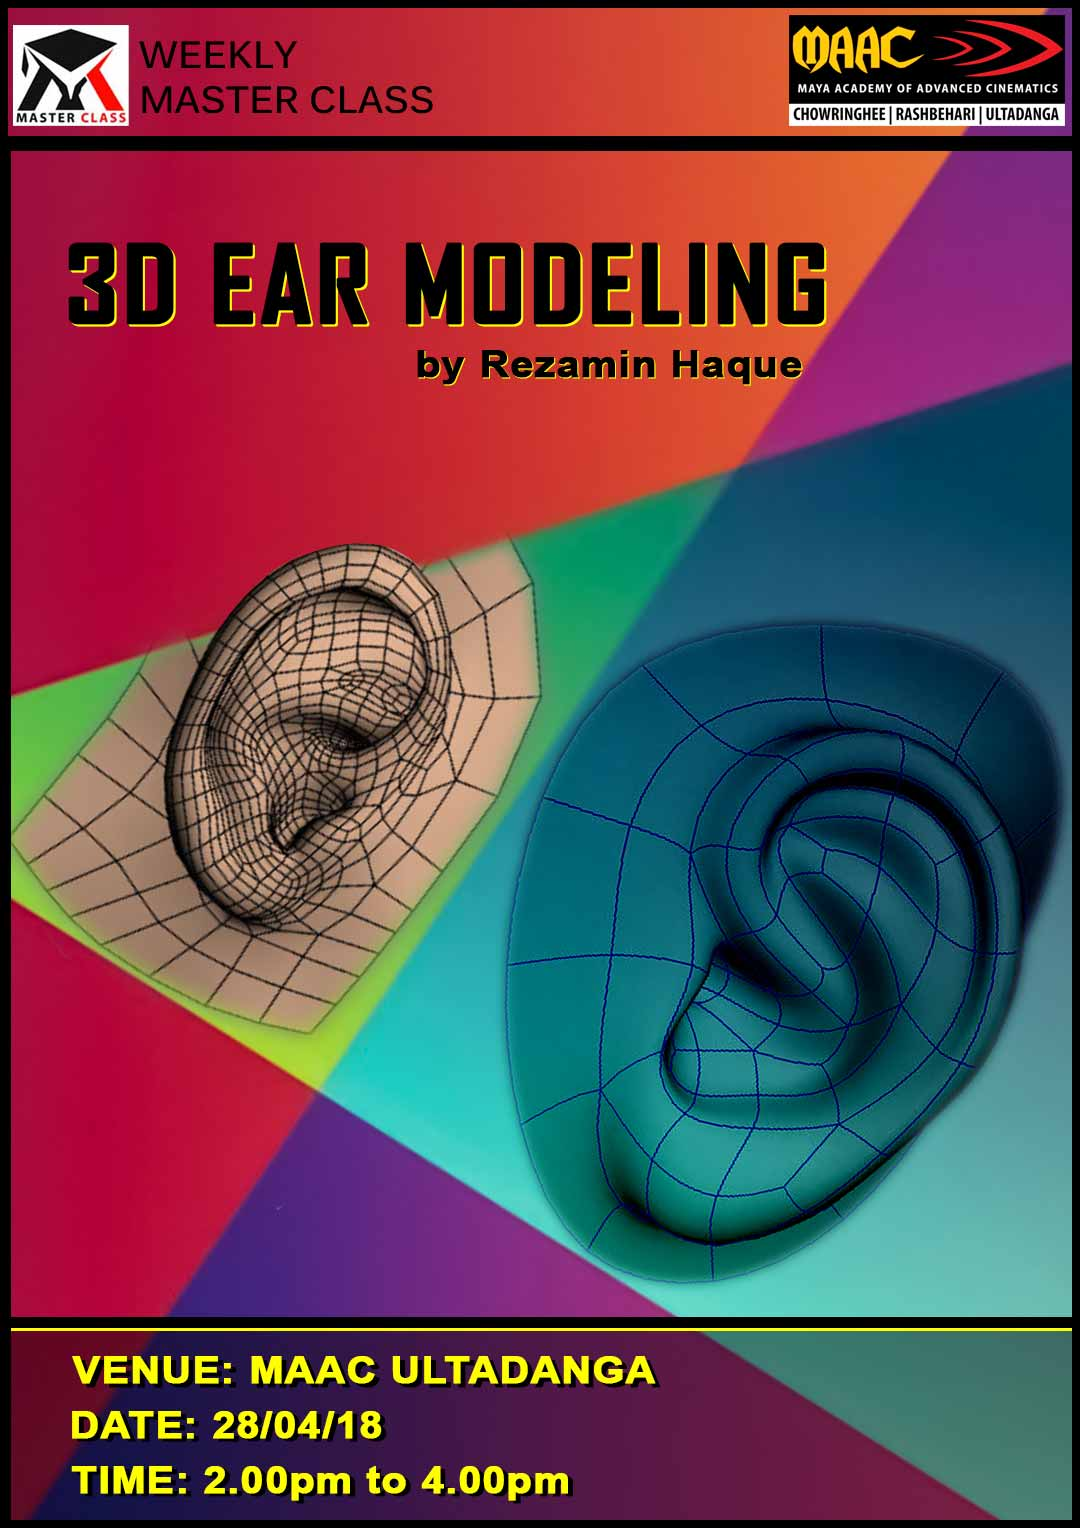 Weekly Master Class on 3D Ear Modeling